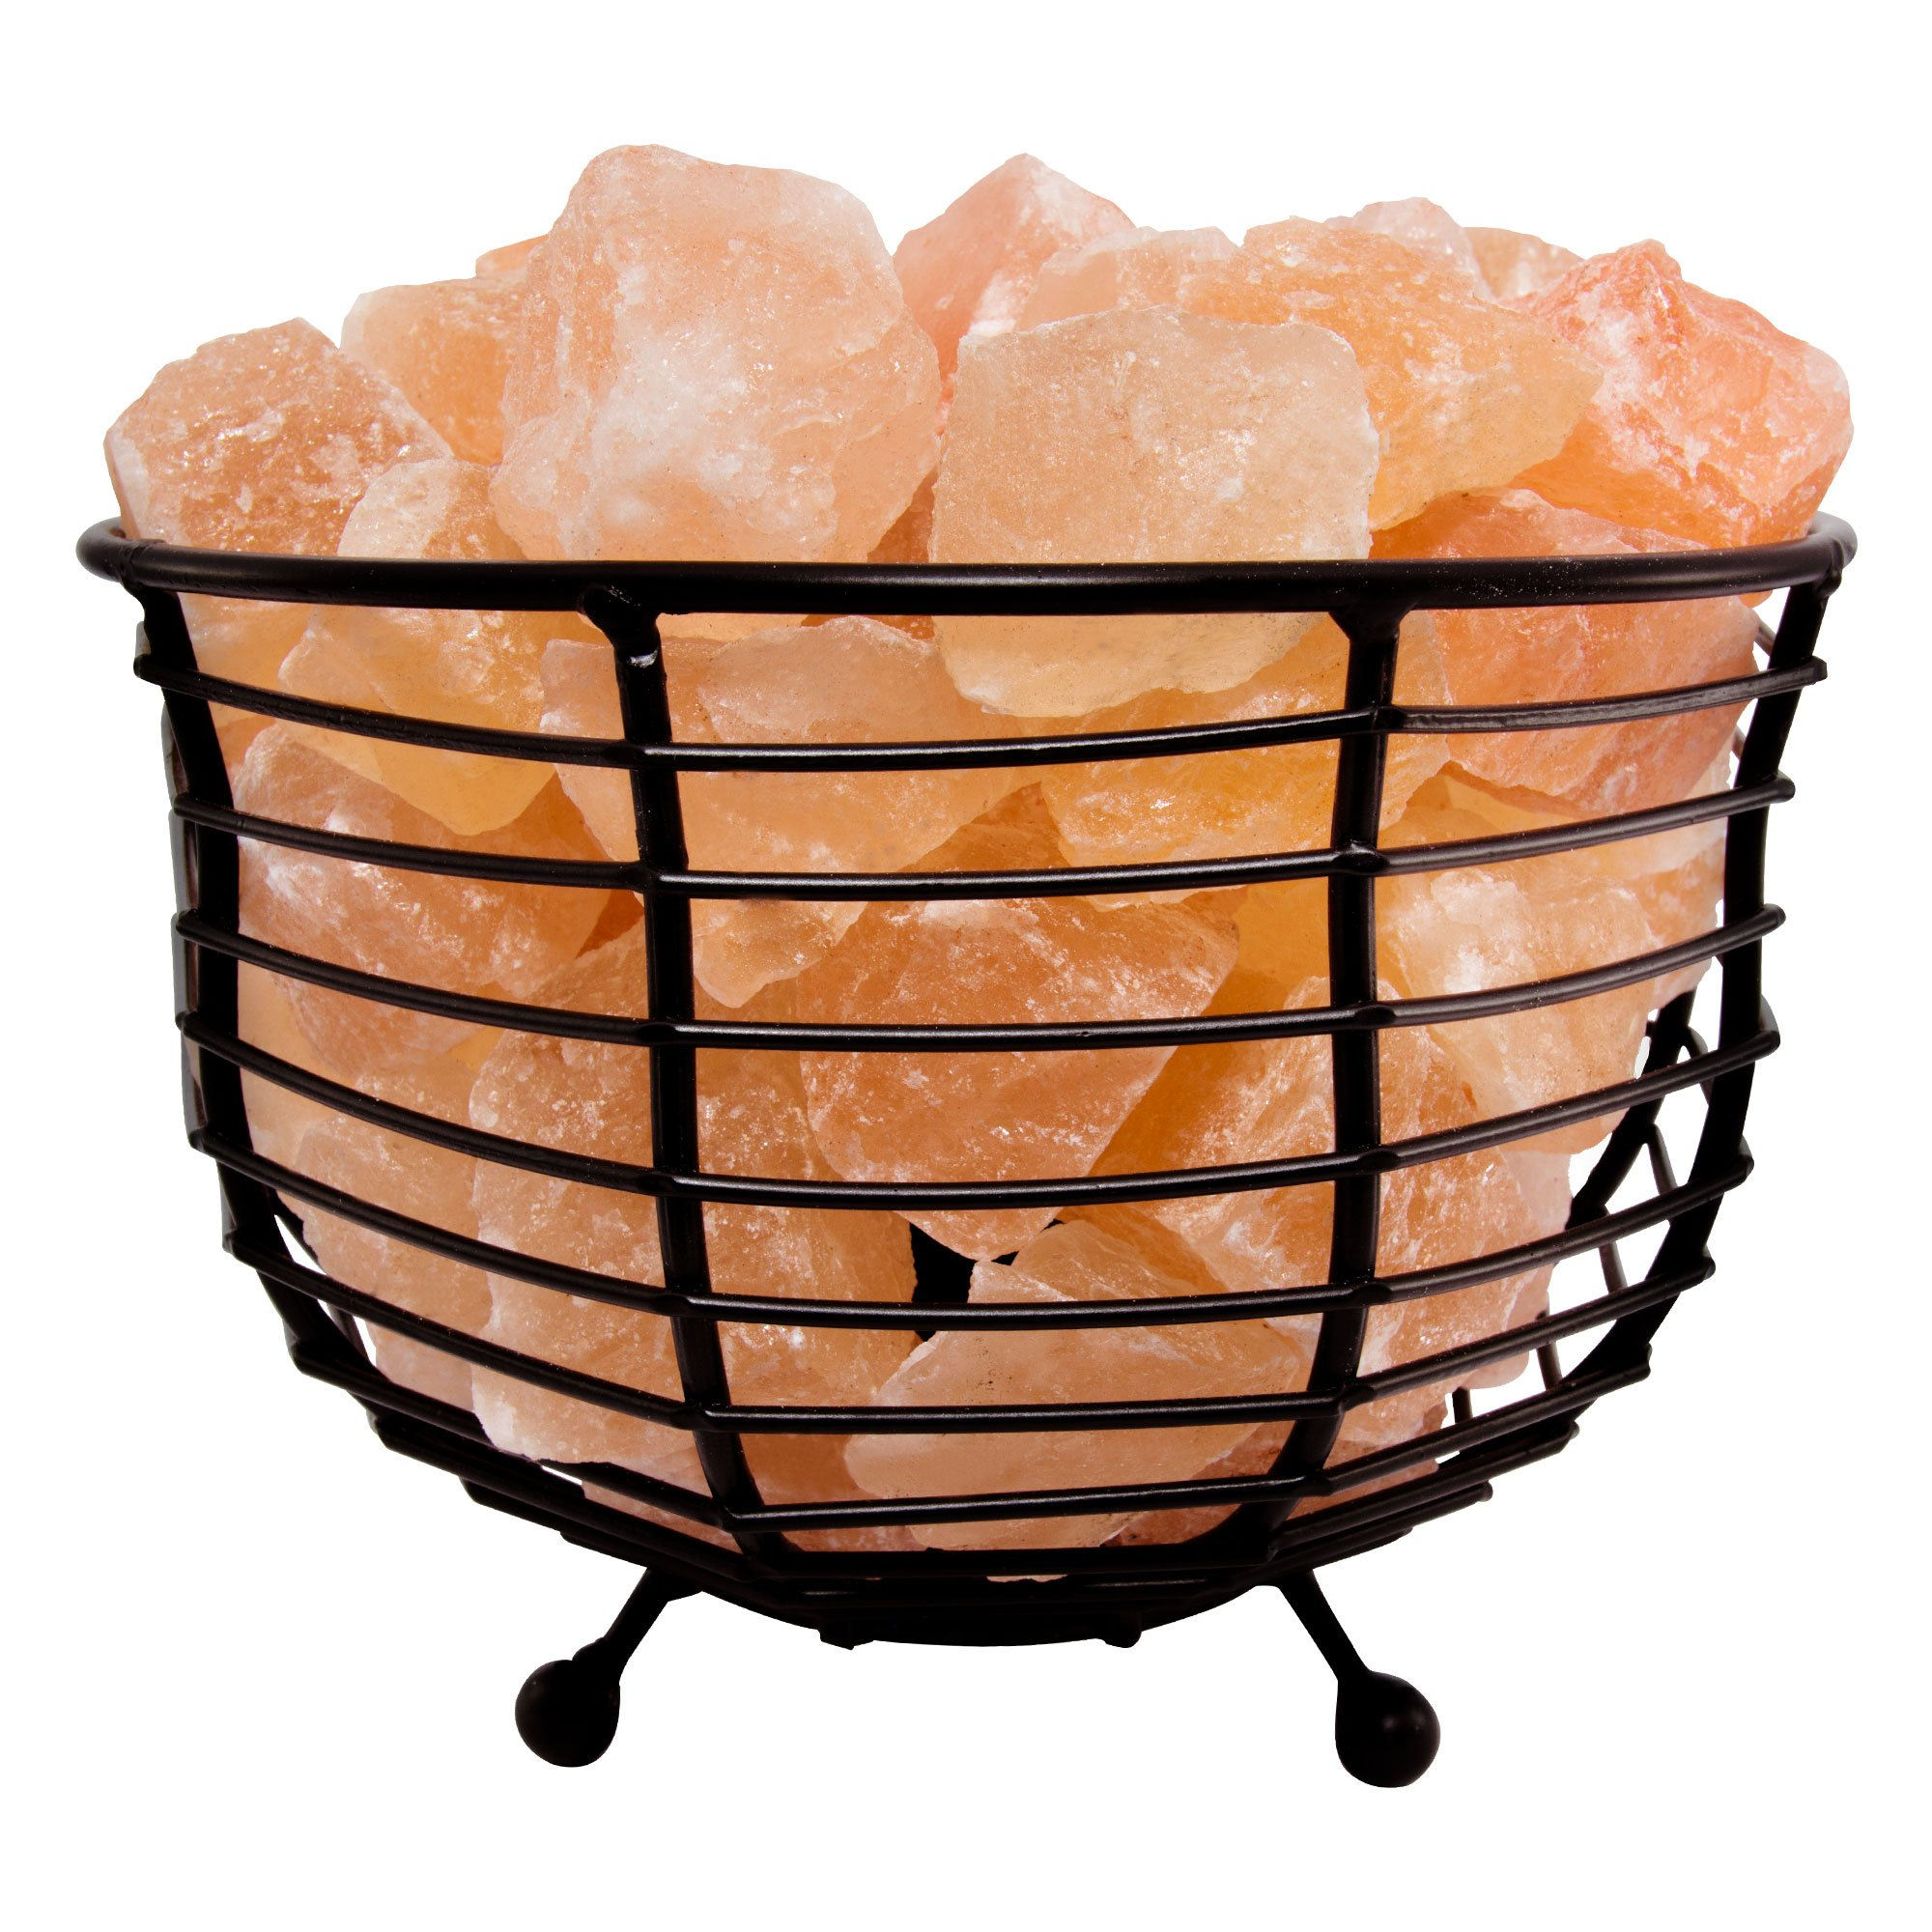 Fab Glass and Mirror SL-BLB93 Metal Basket Pure Himalayan Crystal Rock Pink Salt Lamp 8 x 8